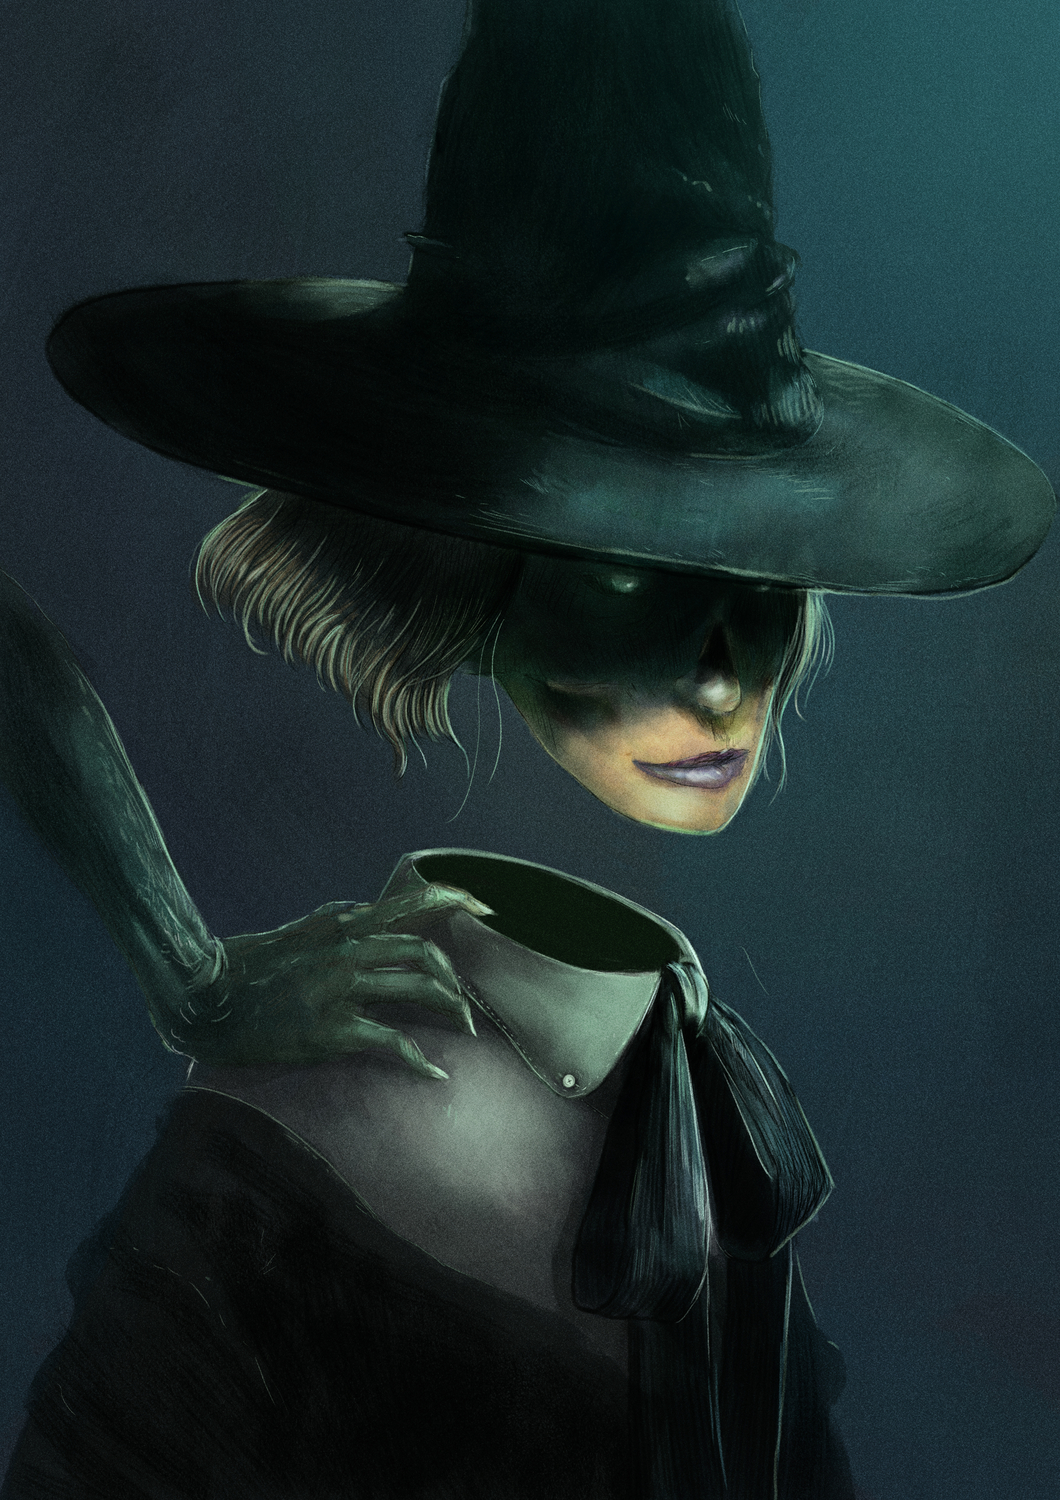 the witch Artwork by Andrea Alemanno